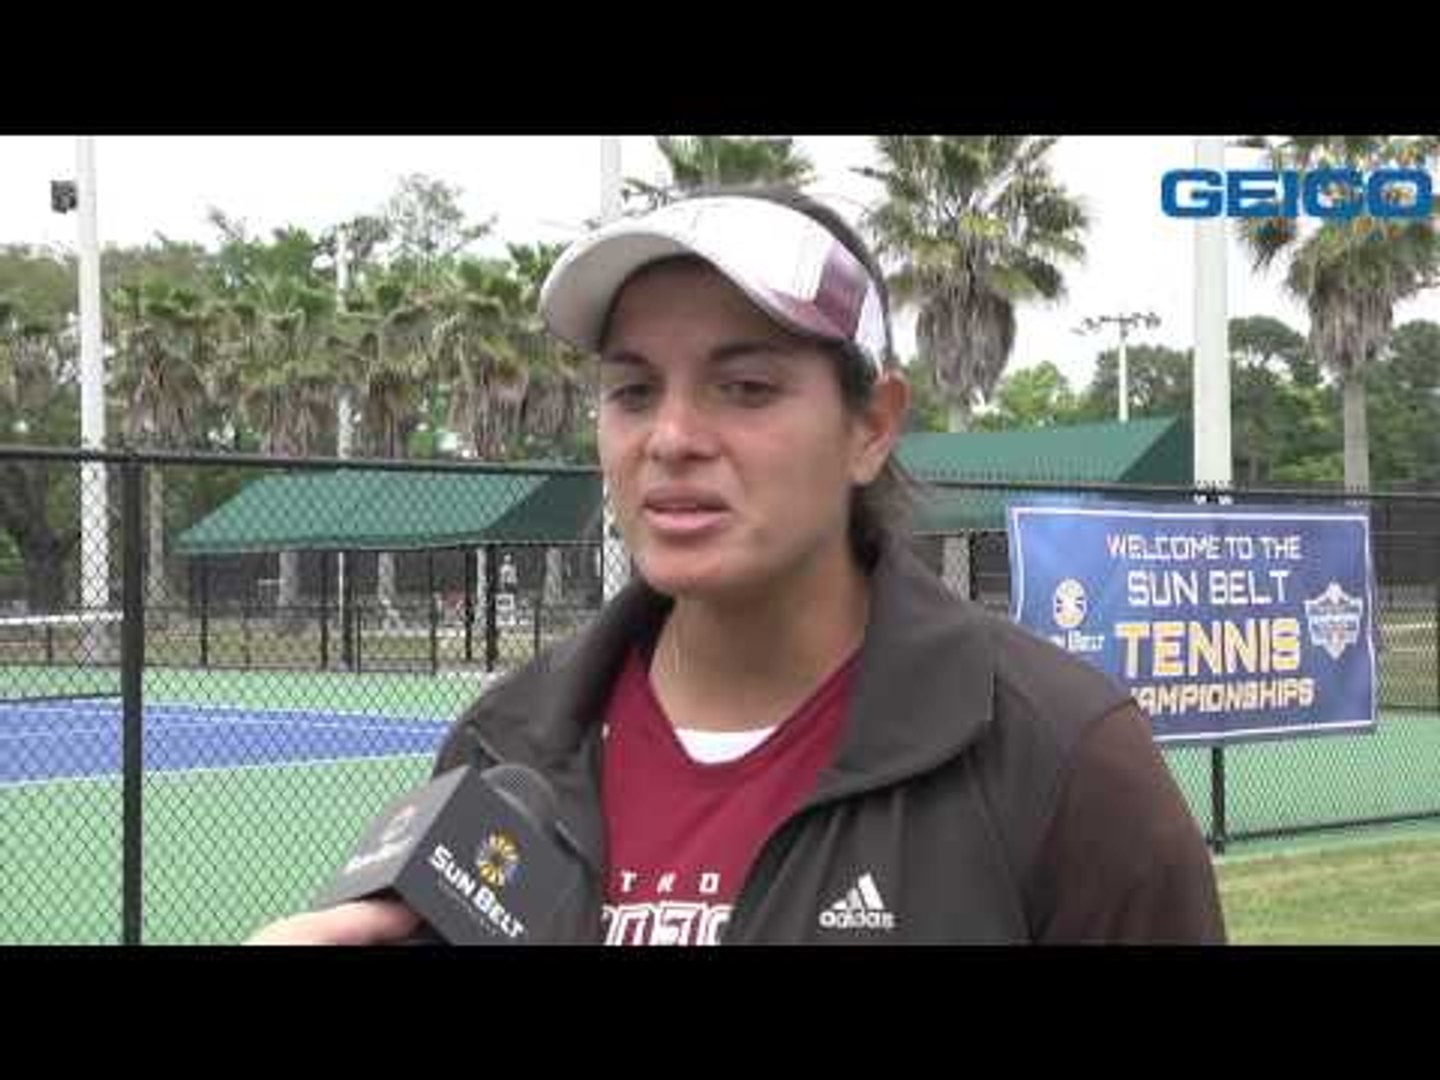 2014 Tennis Championship - Women's Match 3 Interviews with Troy